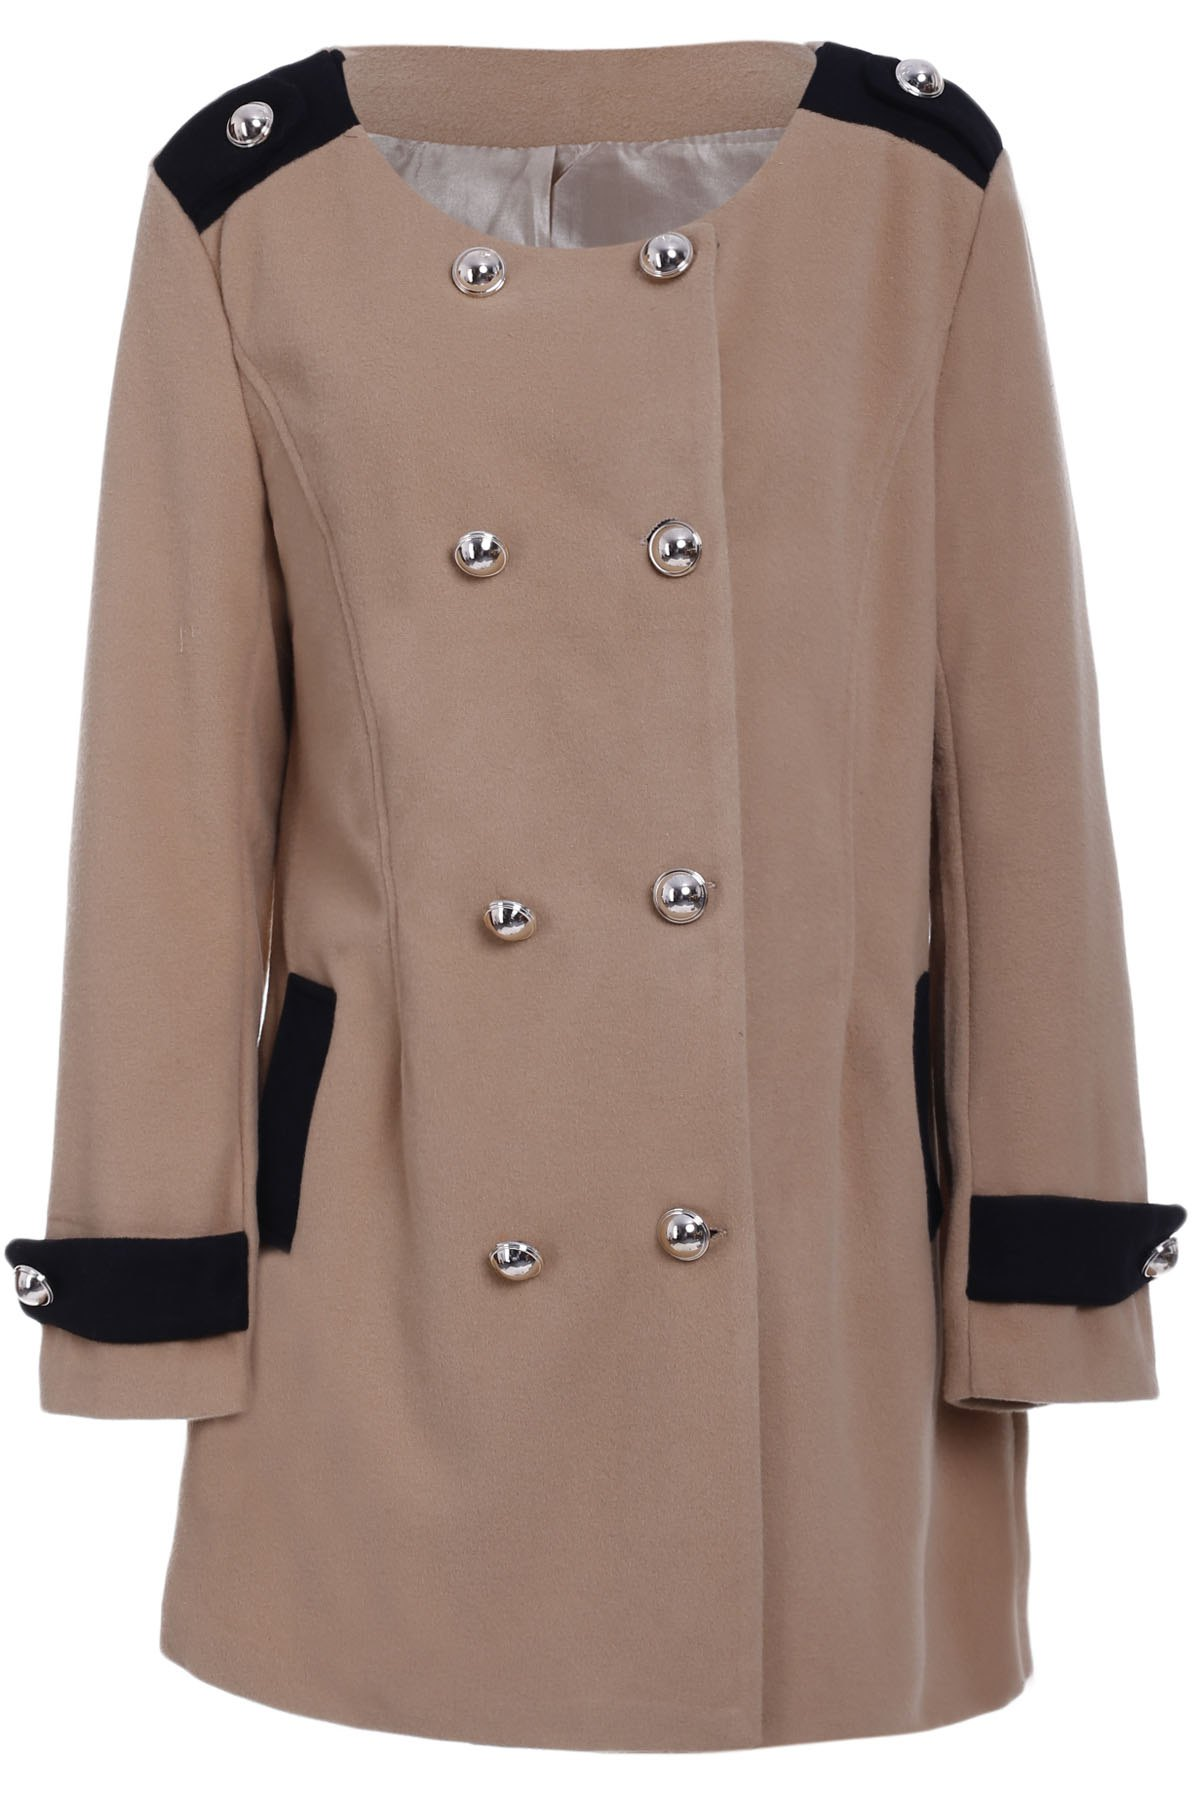 Womens Chic Turn-Down Collar Long Sleeve Double-Breasted Woolen CoatWomen<br><br><br>Size: M<br>Color: CAMEL